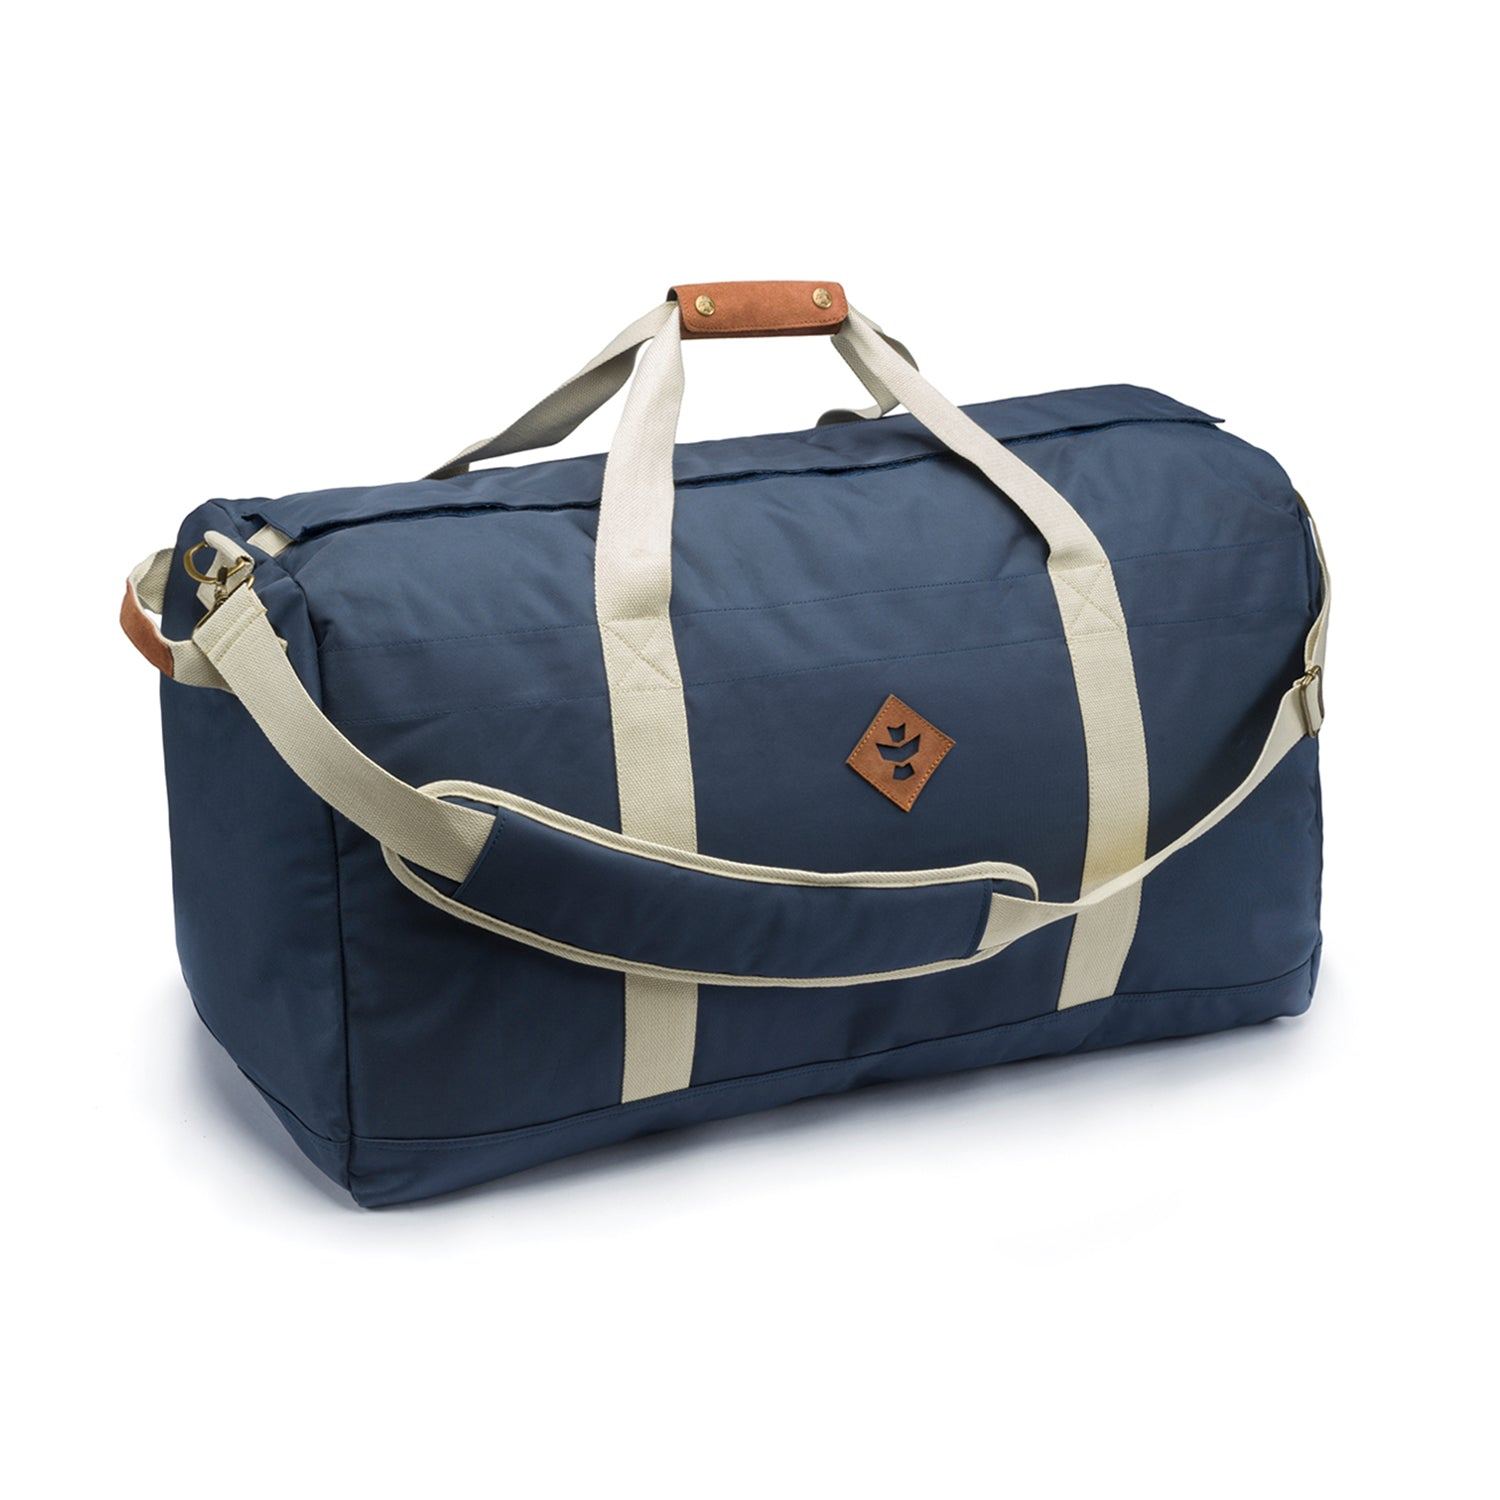 Navy Blue Smell Proof Water Resistant Large Duffle Bag